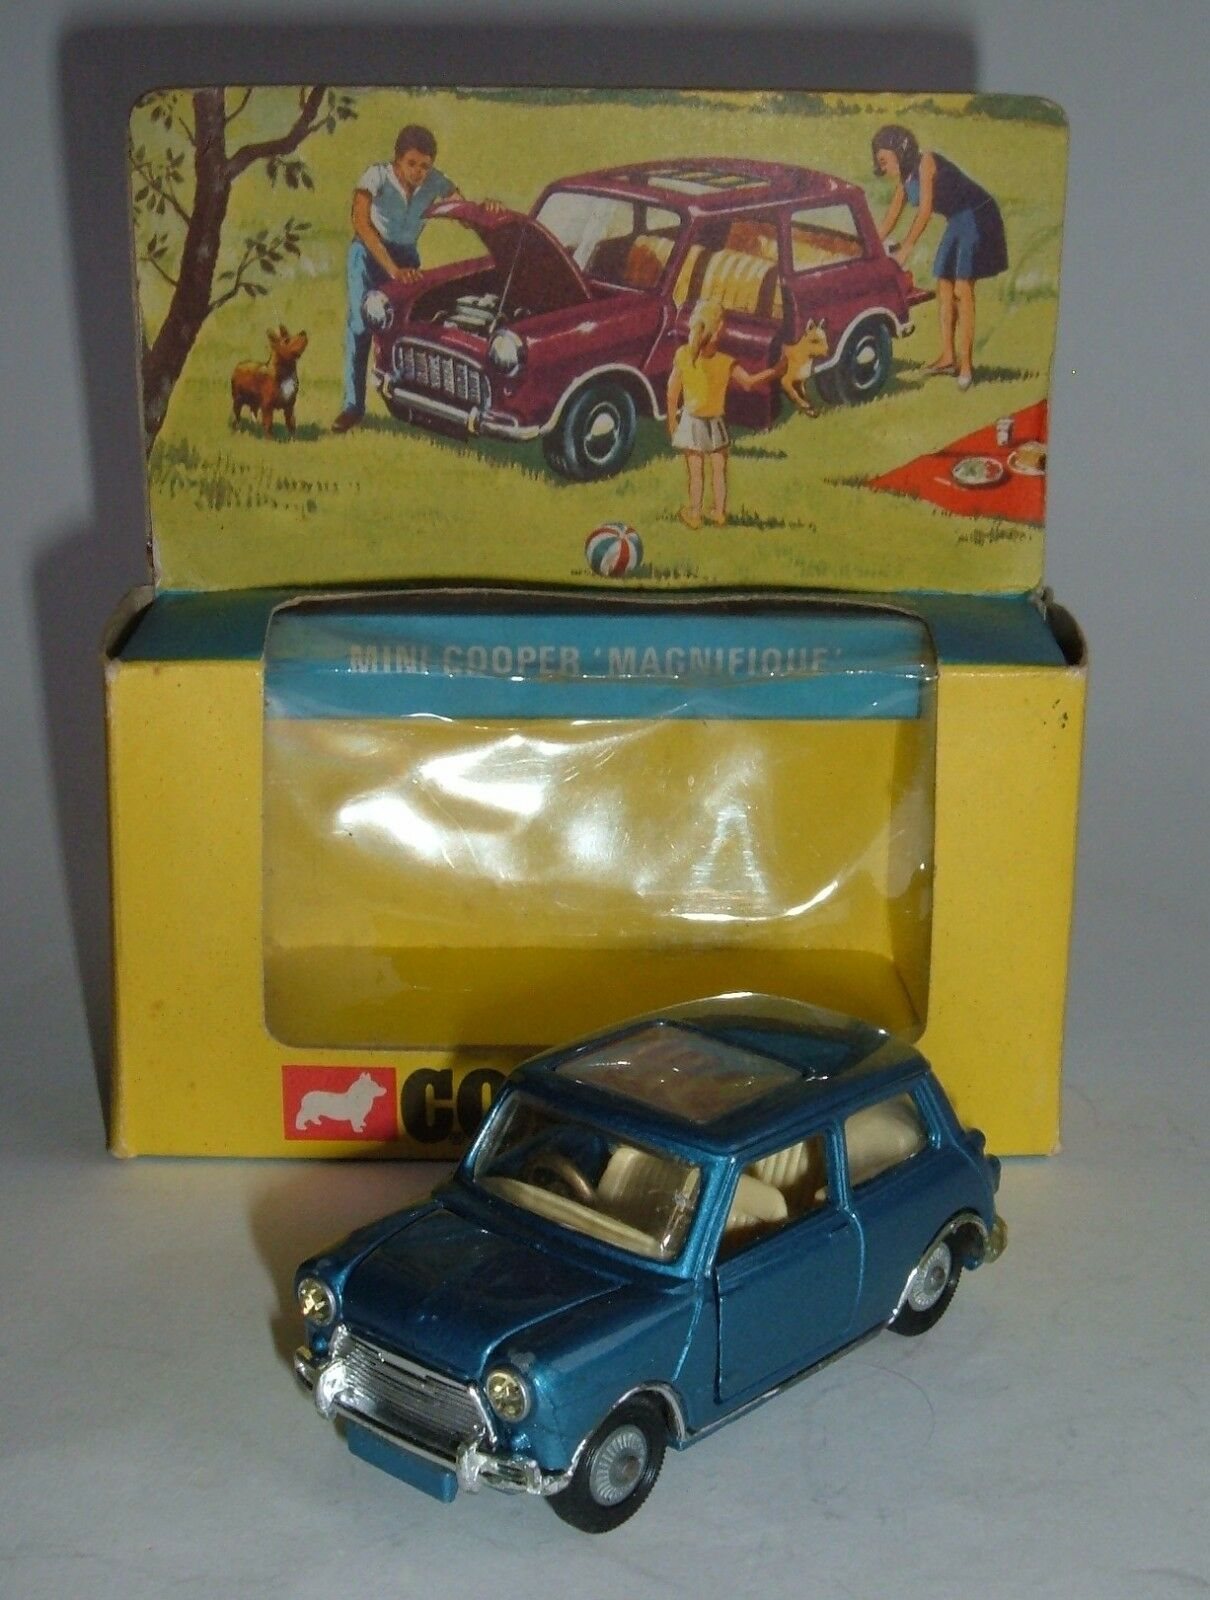 Corgi Toys No. 334, Mini-Cooper 'Magnifique', - Superb Near Mint.